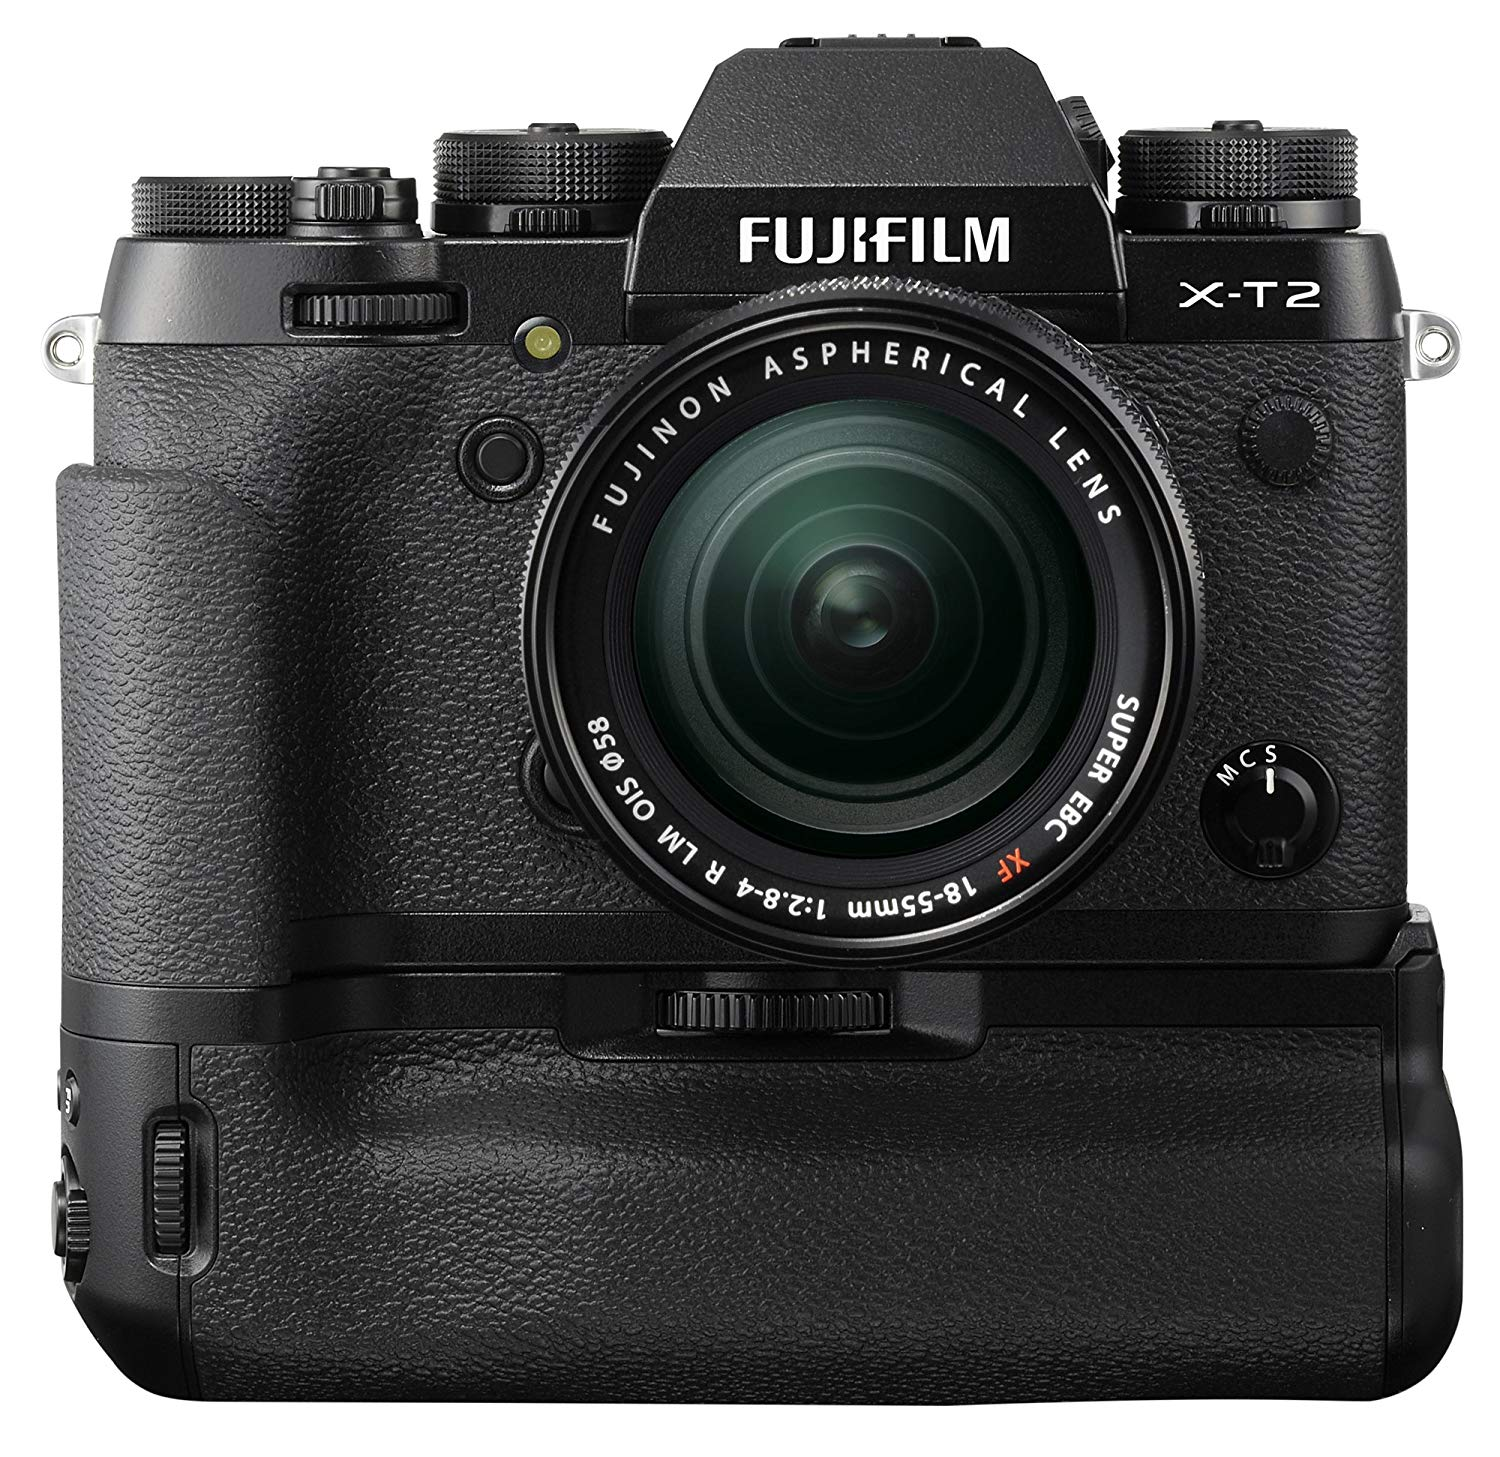 Fujifilm X T2 Build and Handling 3 image